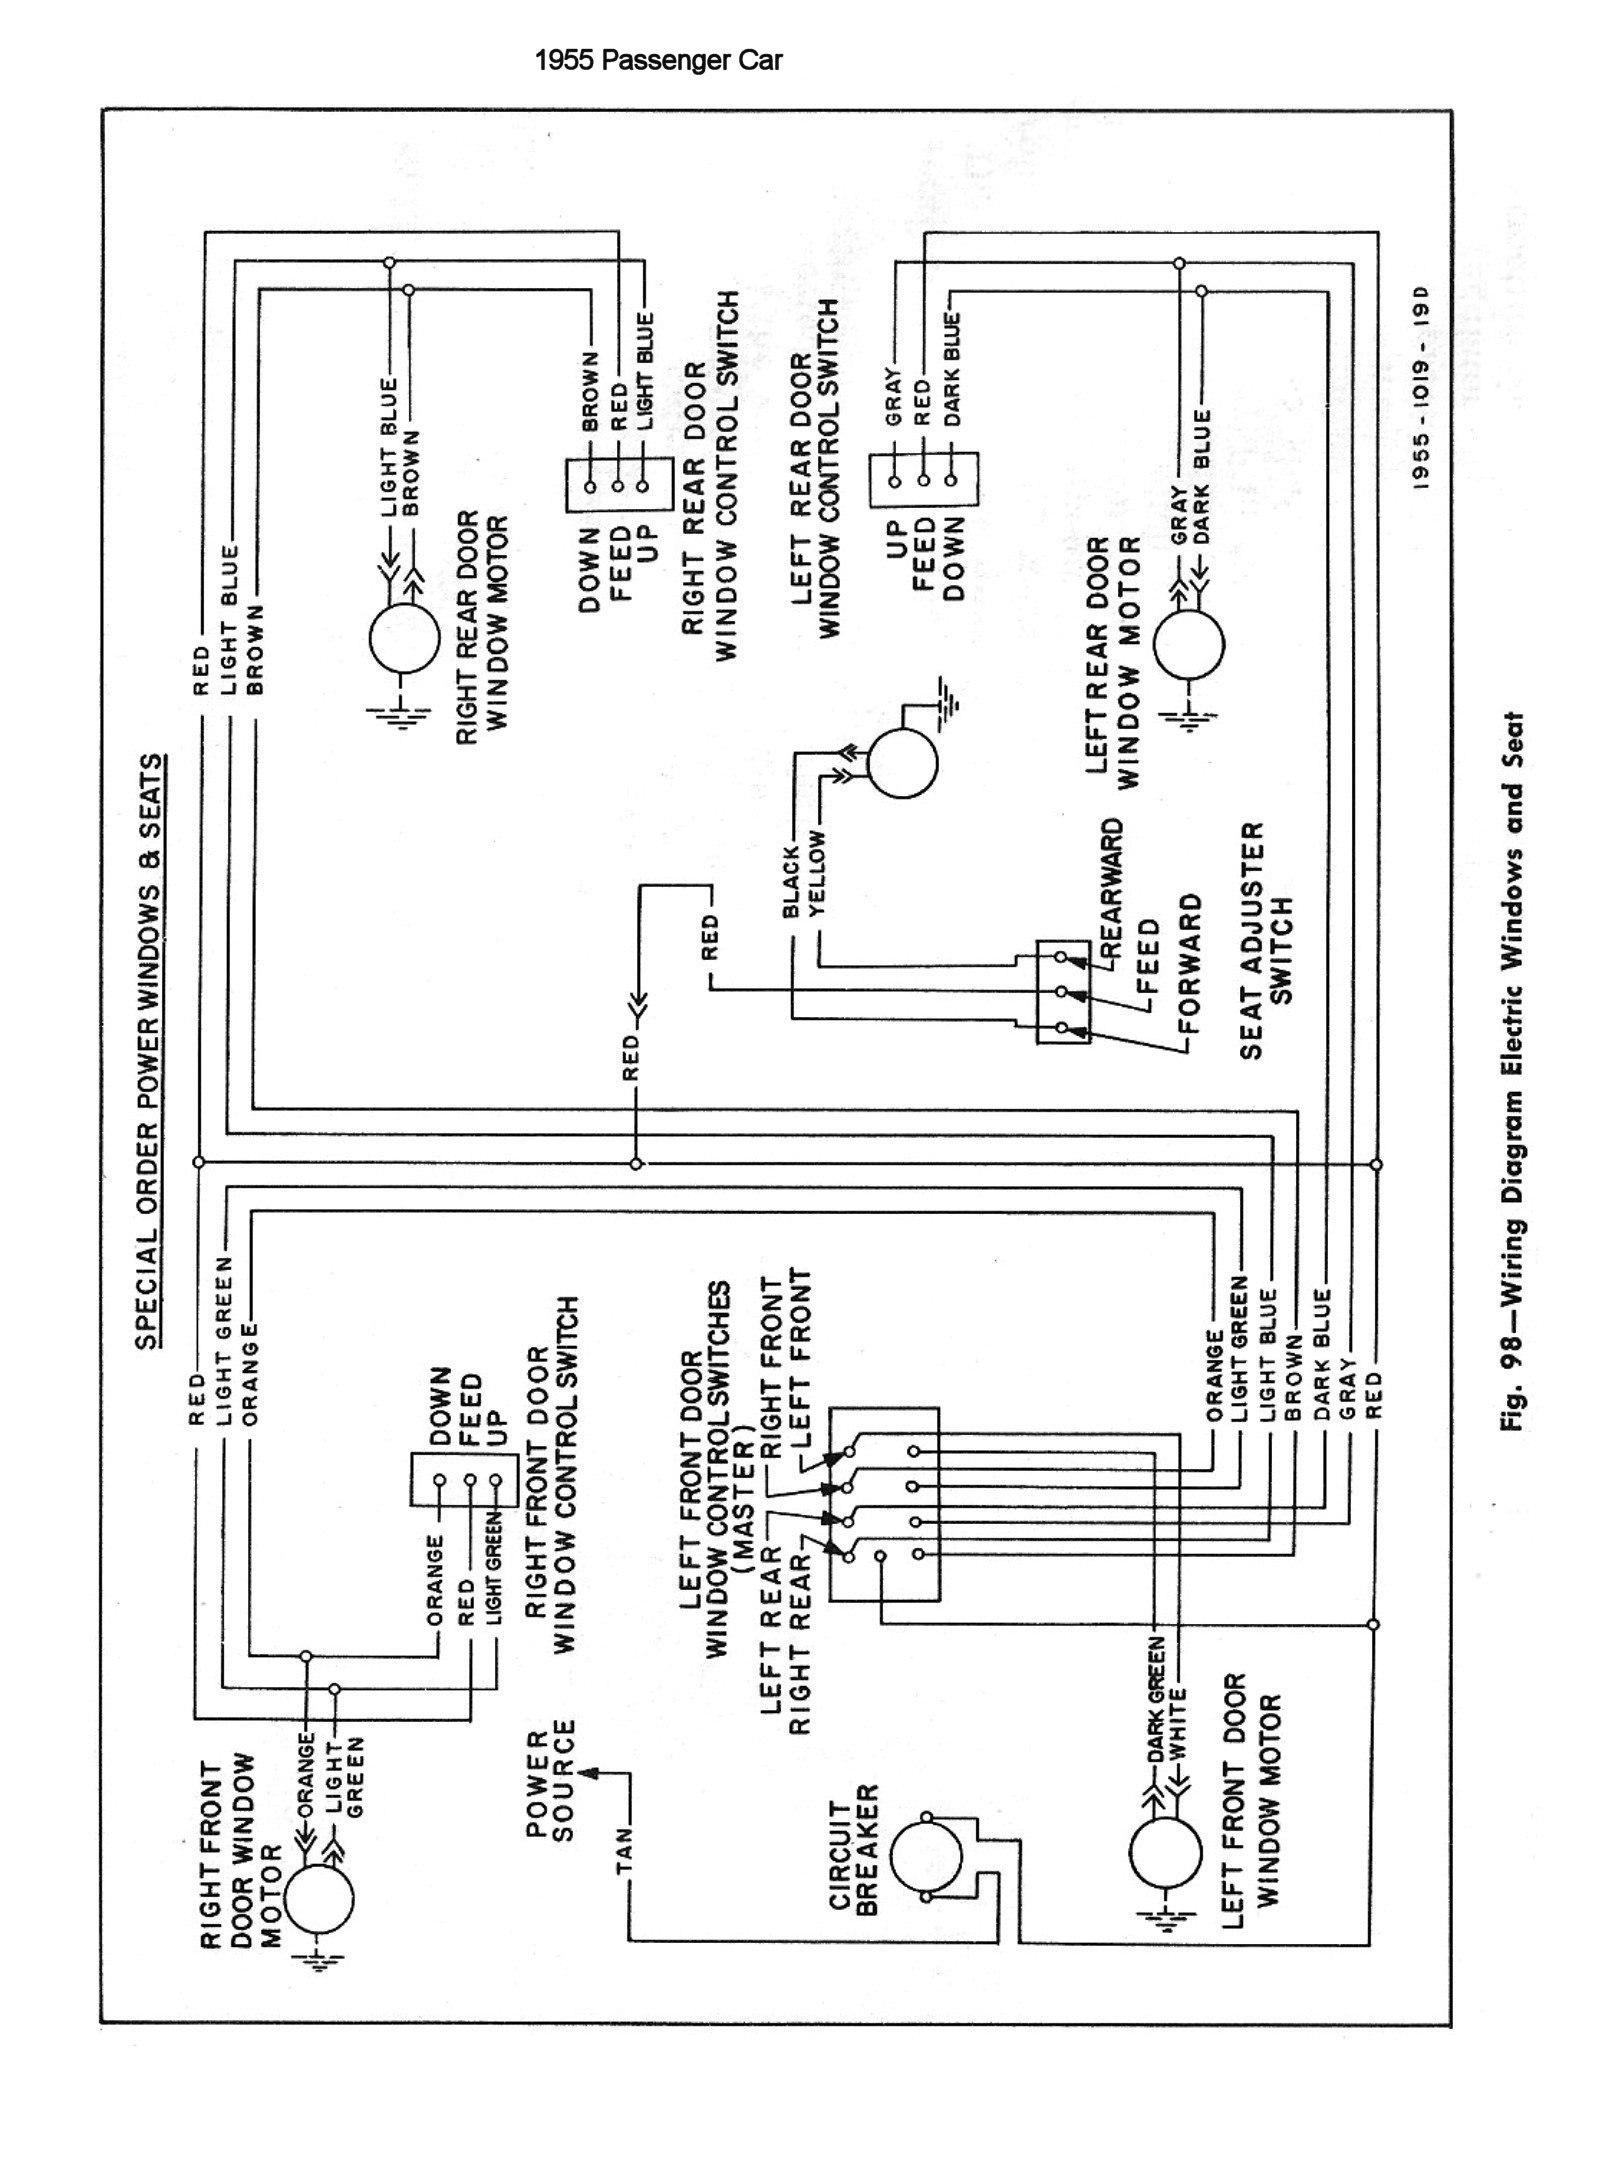 hight resolution of wire diagram for 1969 international pickup wiring library1955 truck wiring diagrams 1955 electric windows